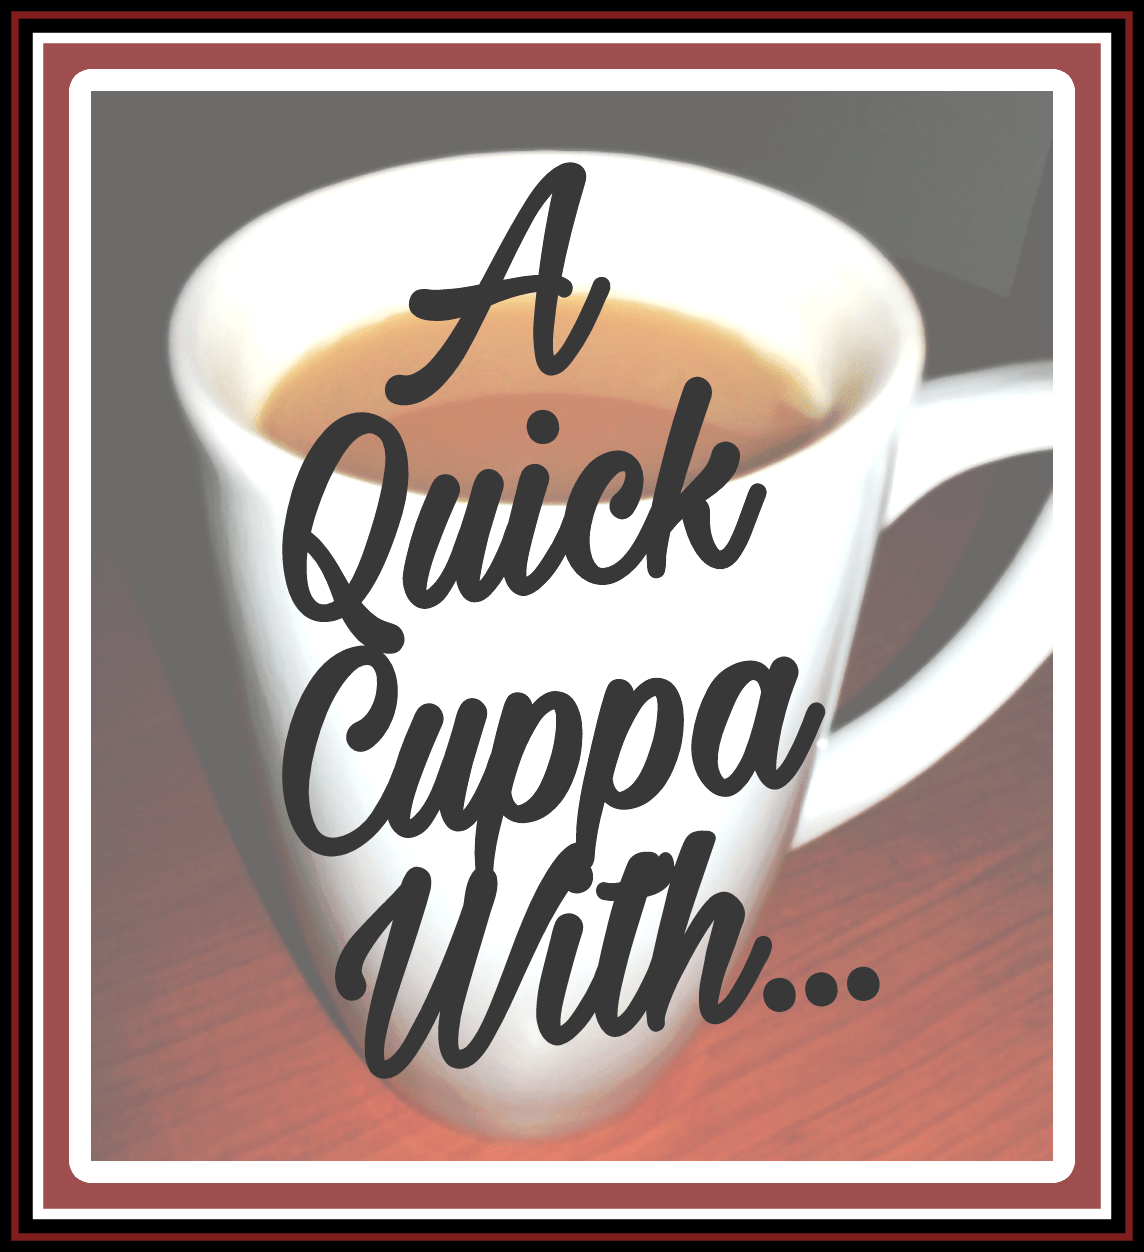 A Quick Cuppa With… The Opinionated Dad